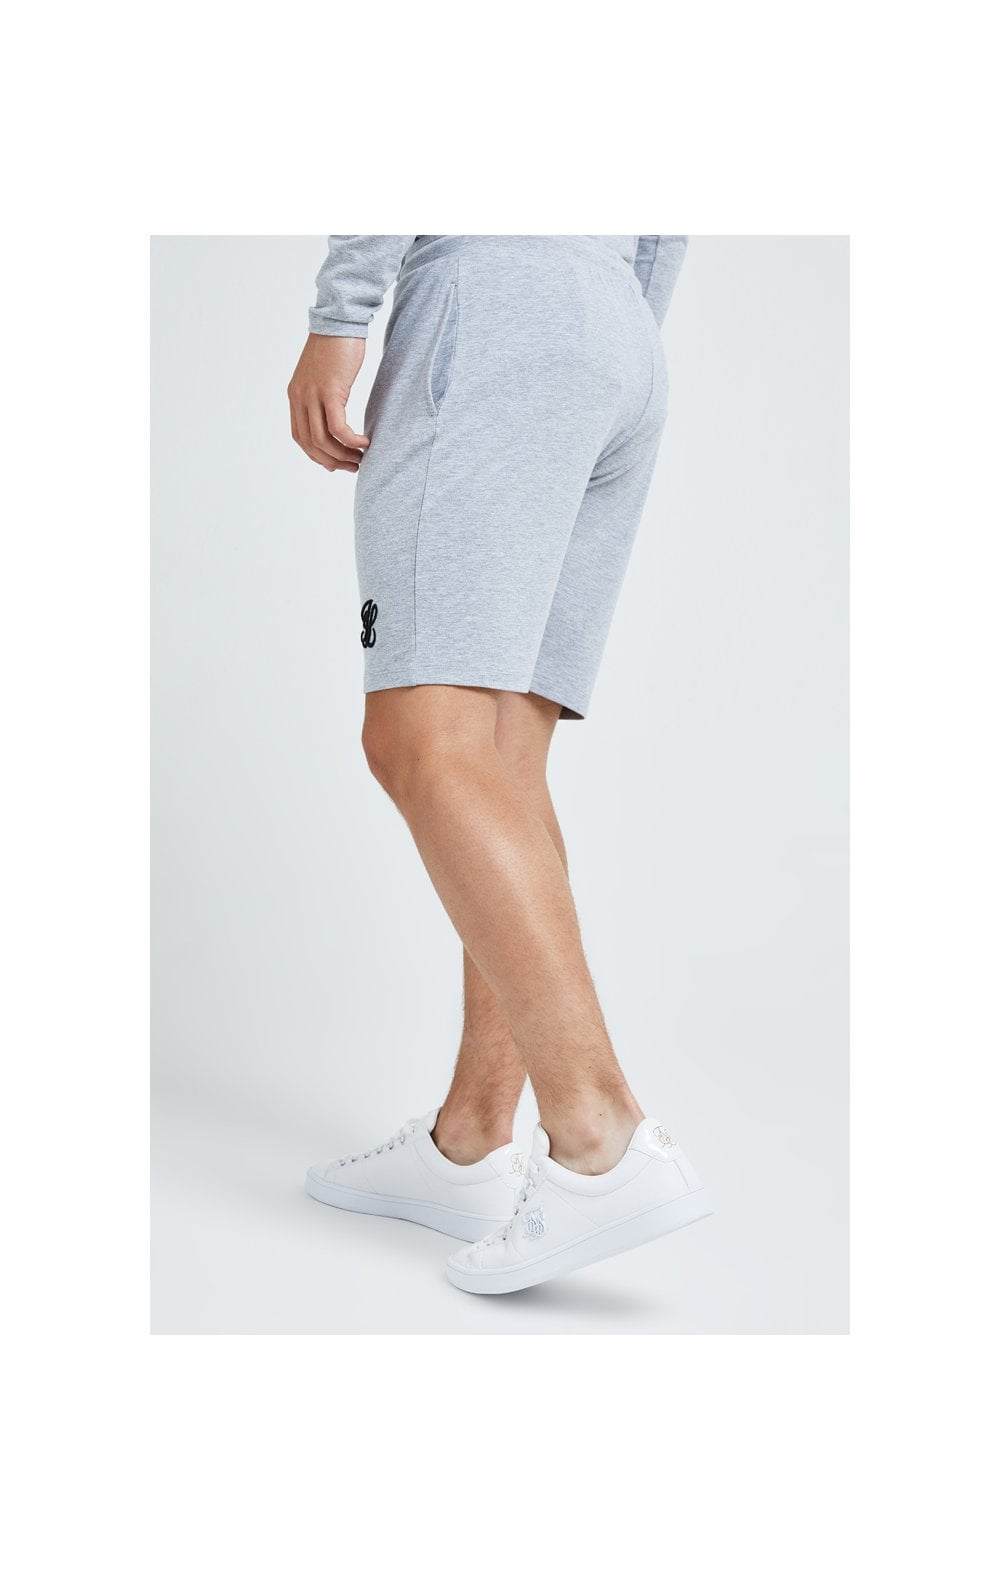 Illusive London Core Jersey Shorts - Grey Marl (3)